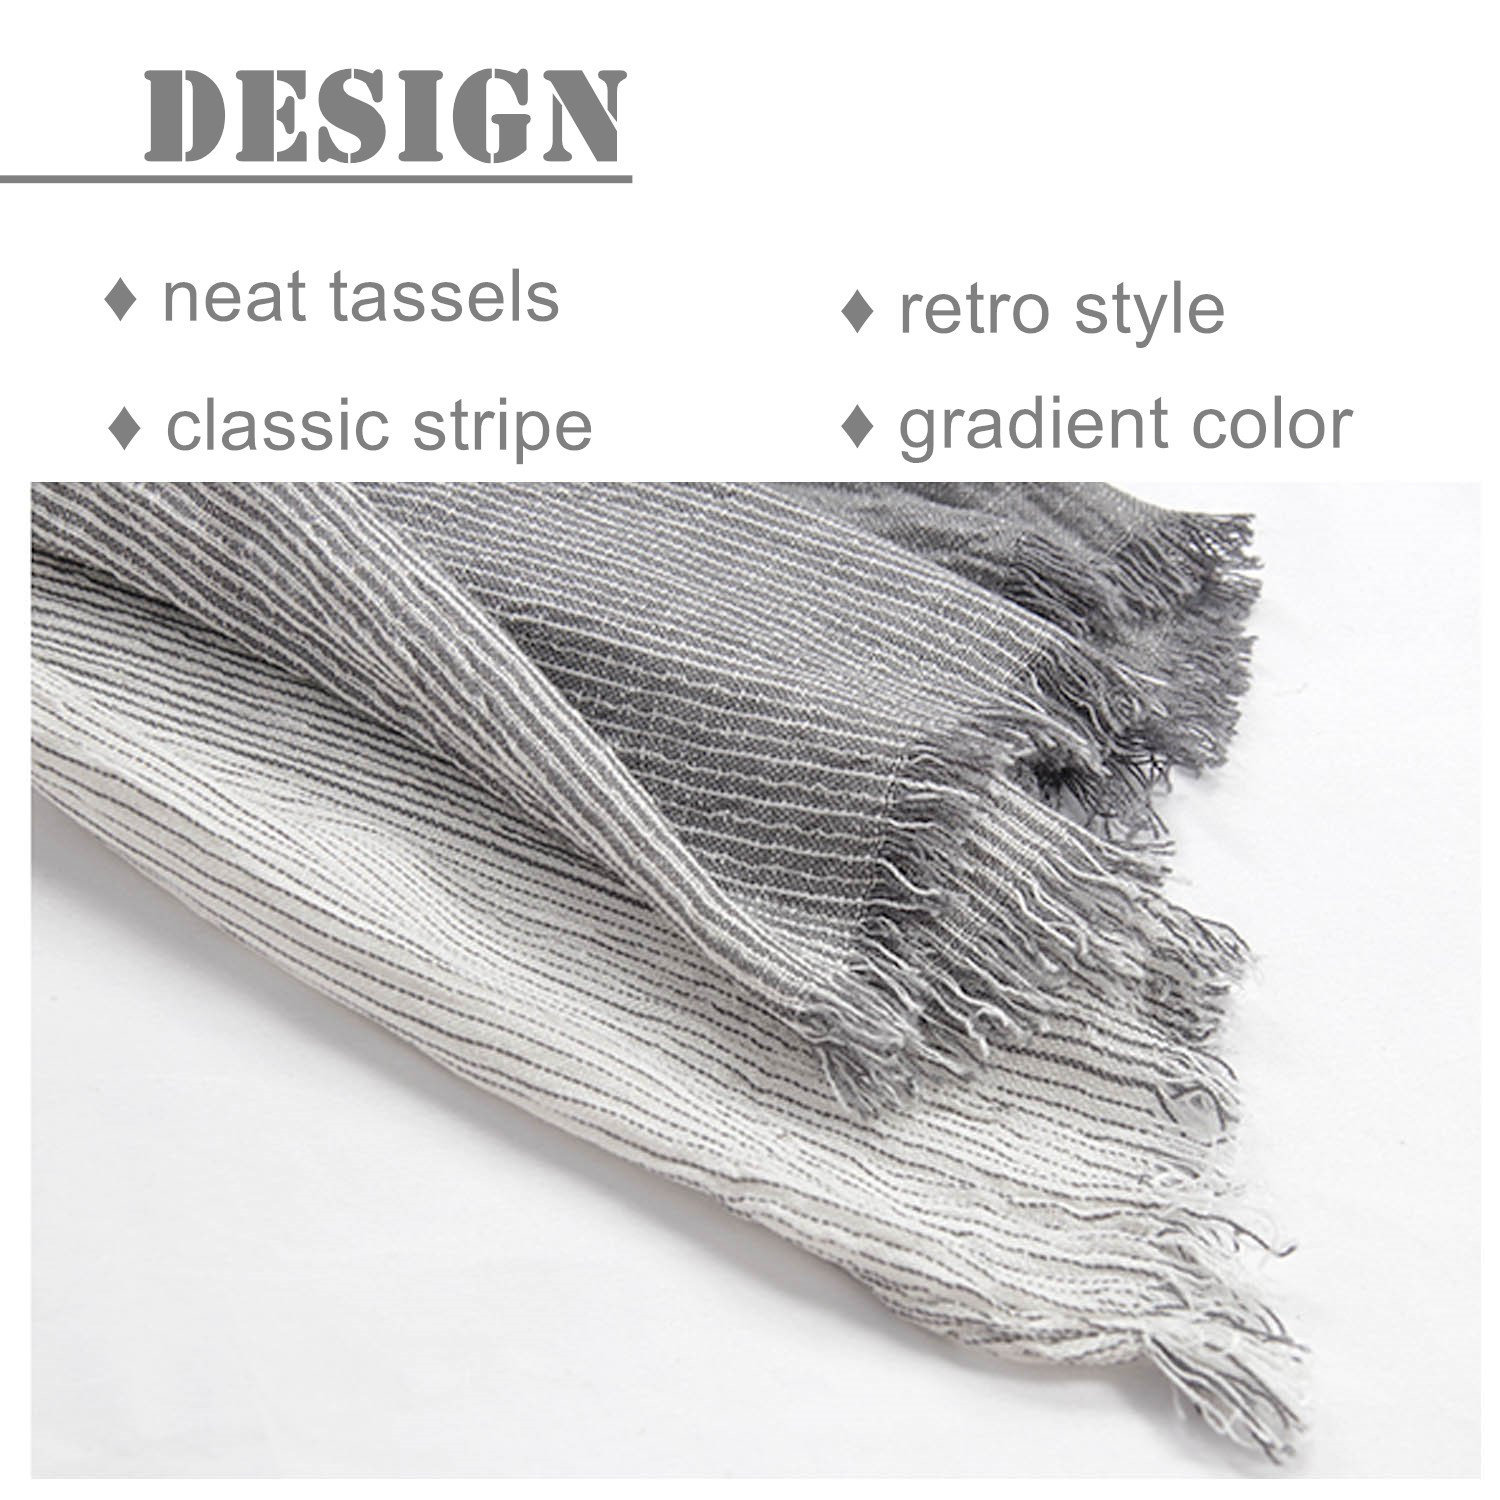 Kalevel Large Scarf Shawl Wrap Cotton Shawls and Wraps with Fringe - Dark Grey by Kalevel (Image #3)